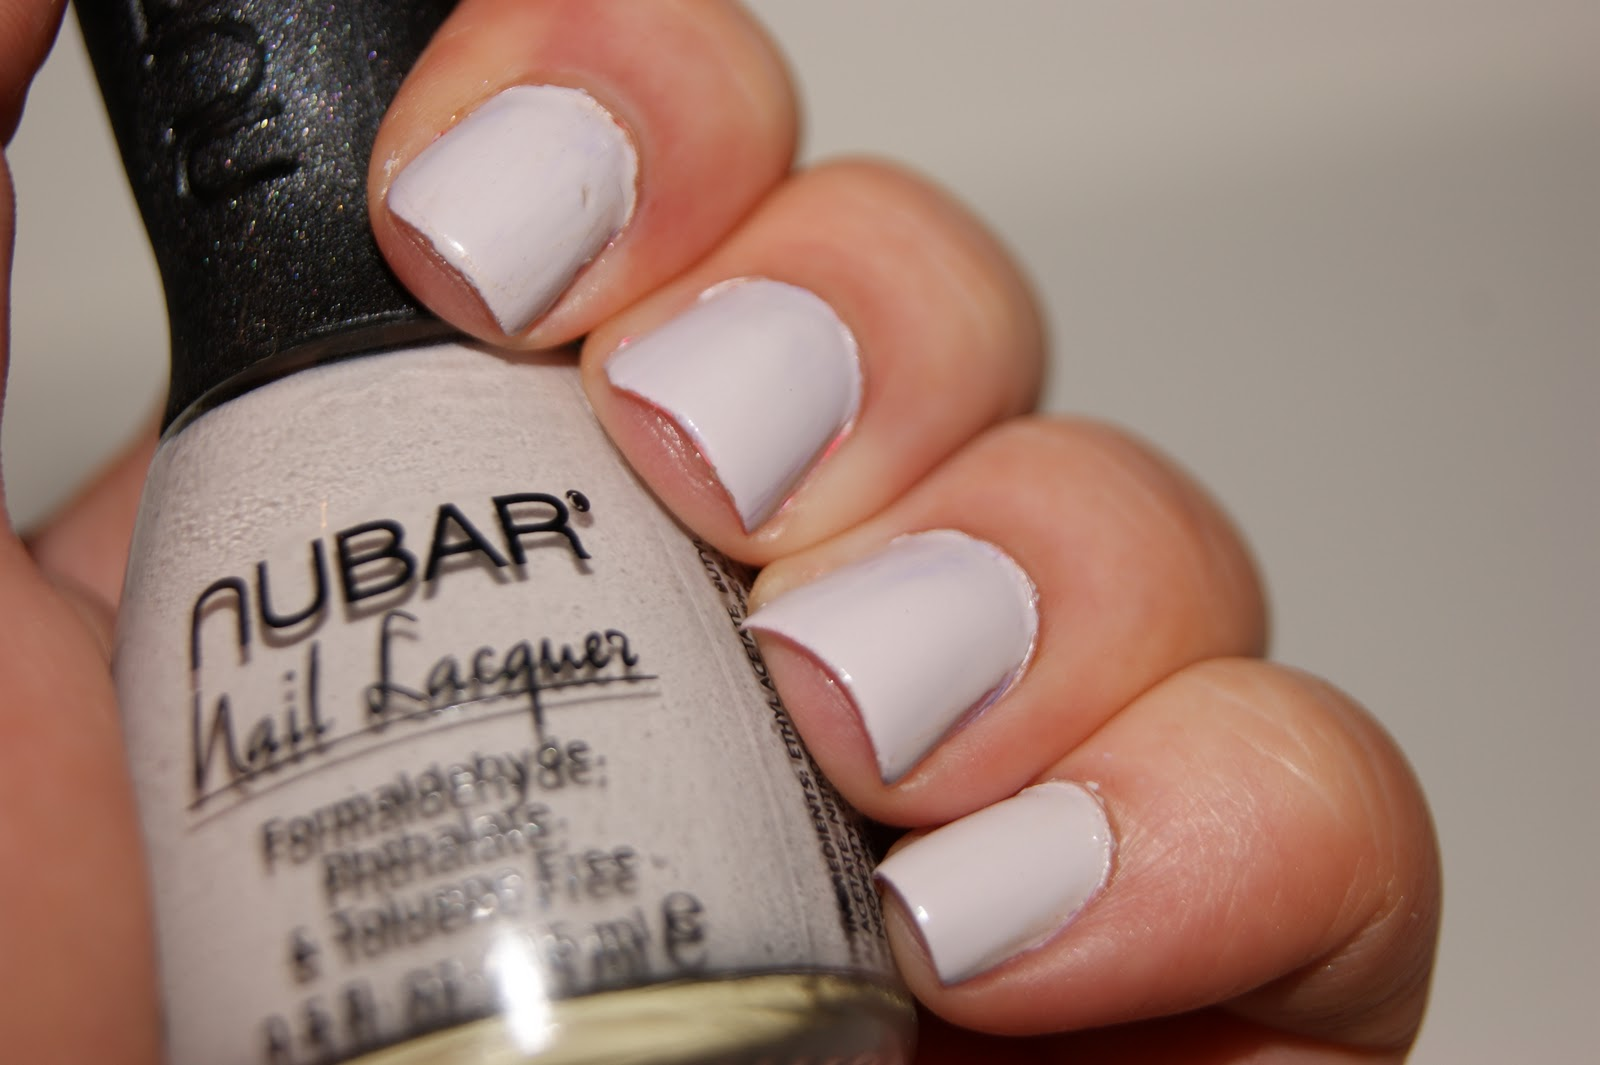 Nubar Polished Chic Collection - Faded Putty Review | The Sunday Girl